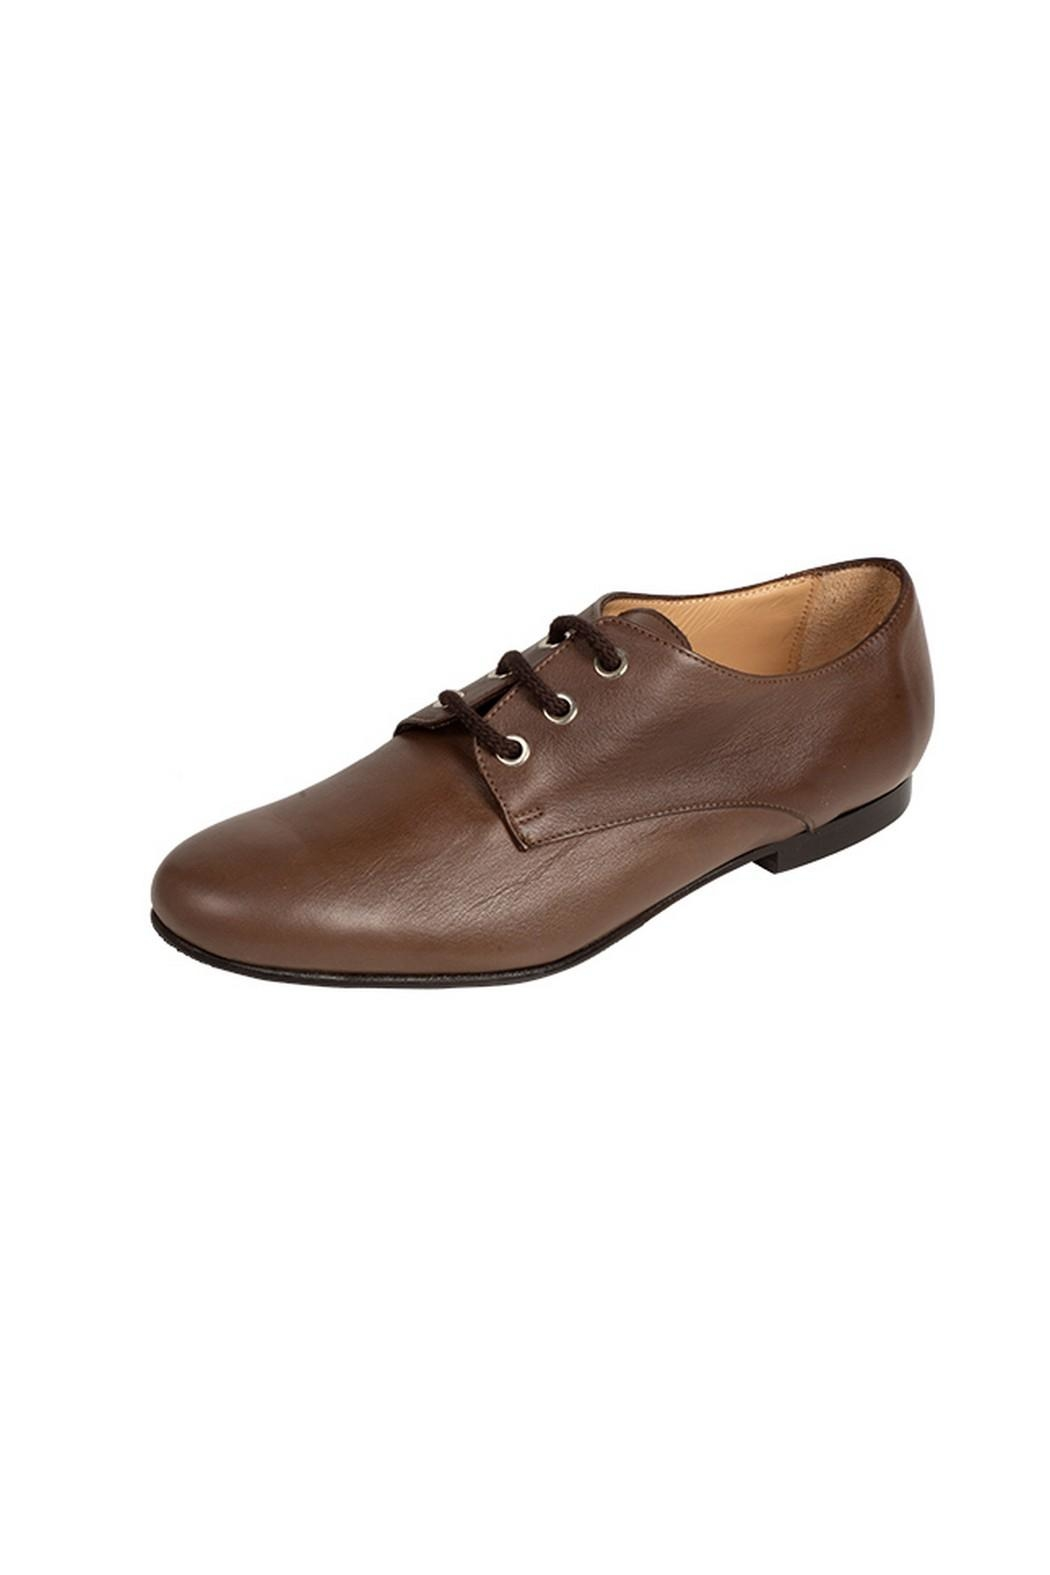 Pascucci Brown Leather Brogues - Front Full Image